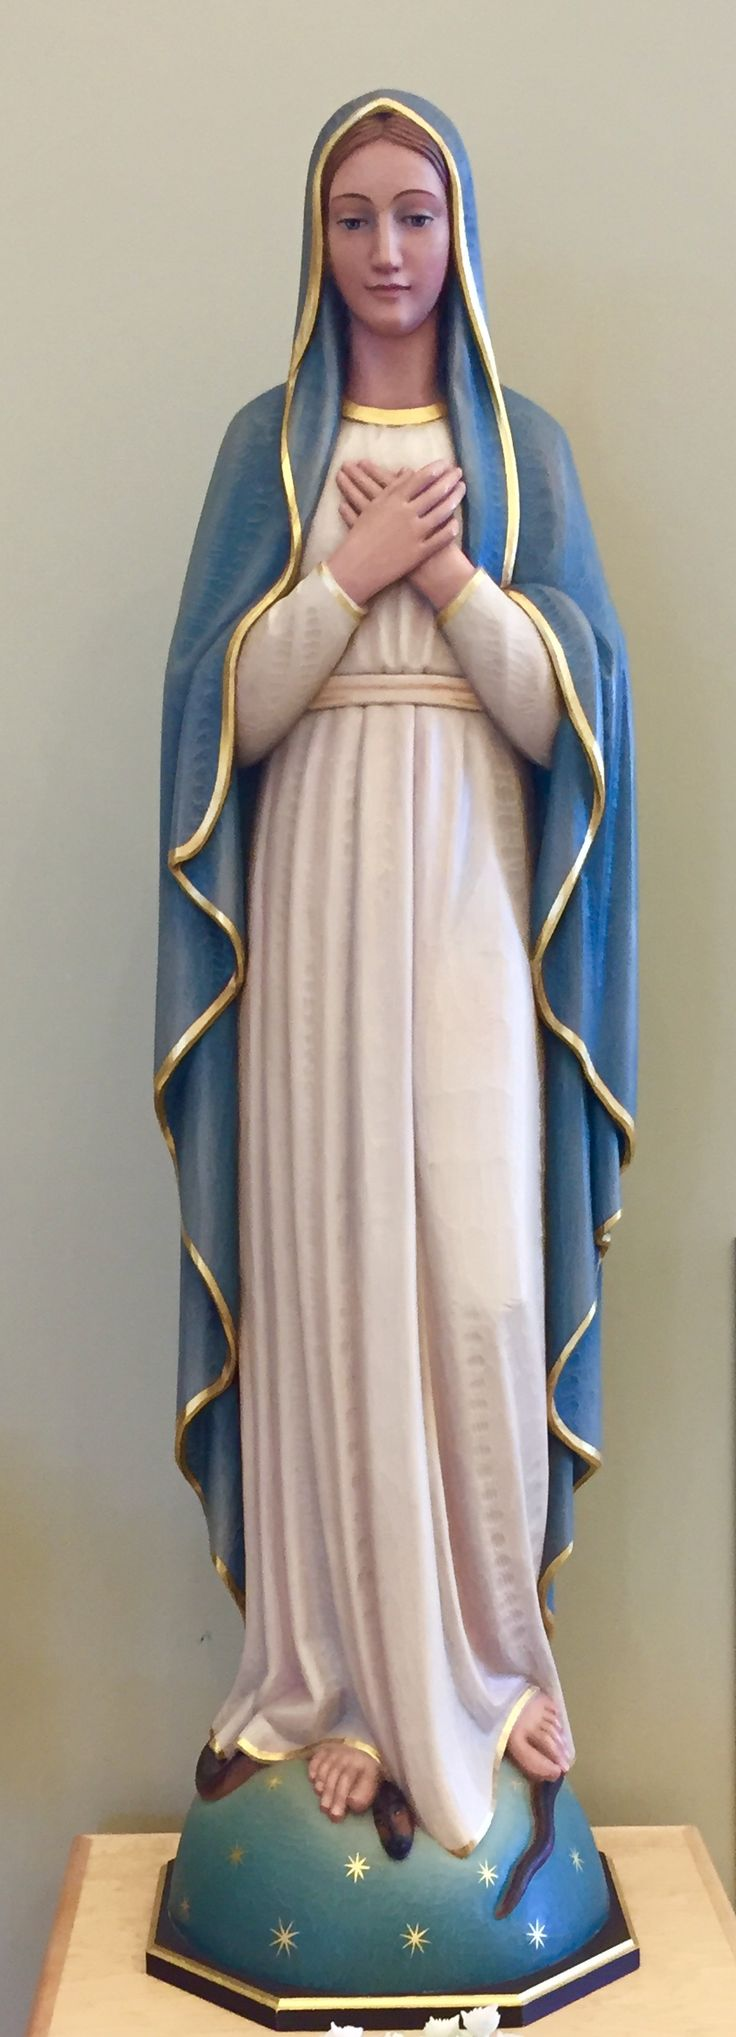 The Blessed Mother Mary                                                                                                                                                      More